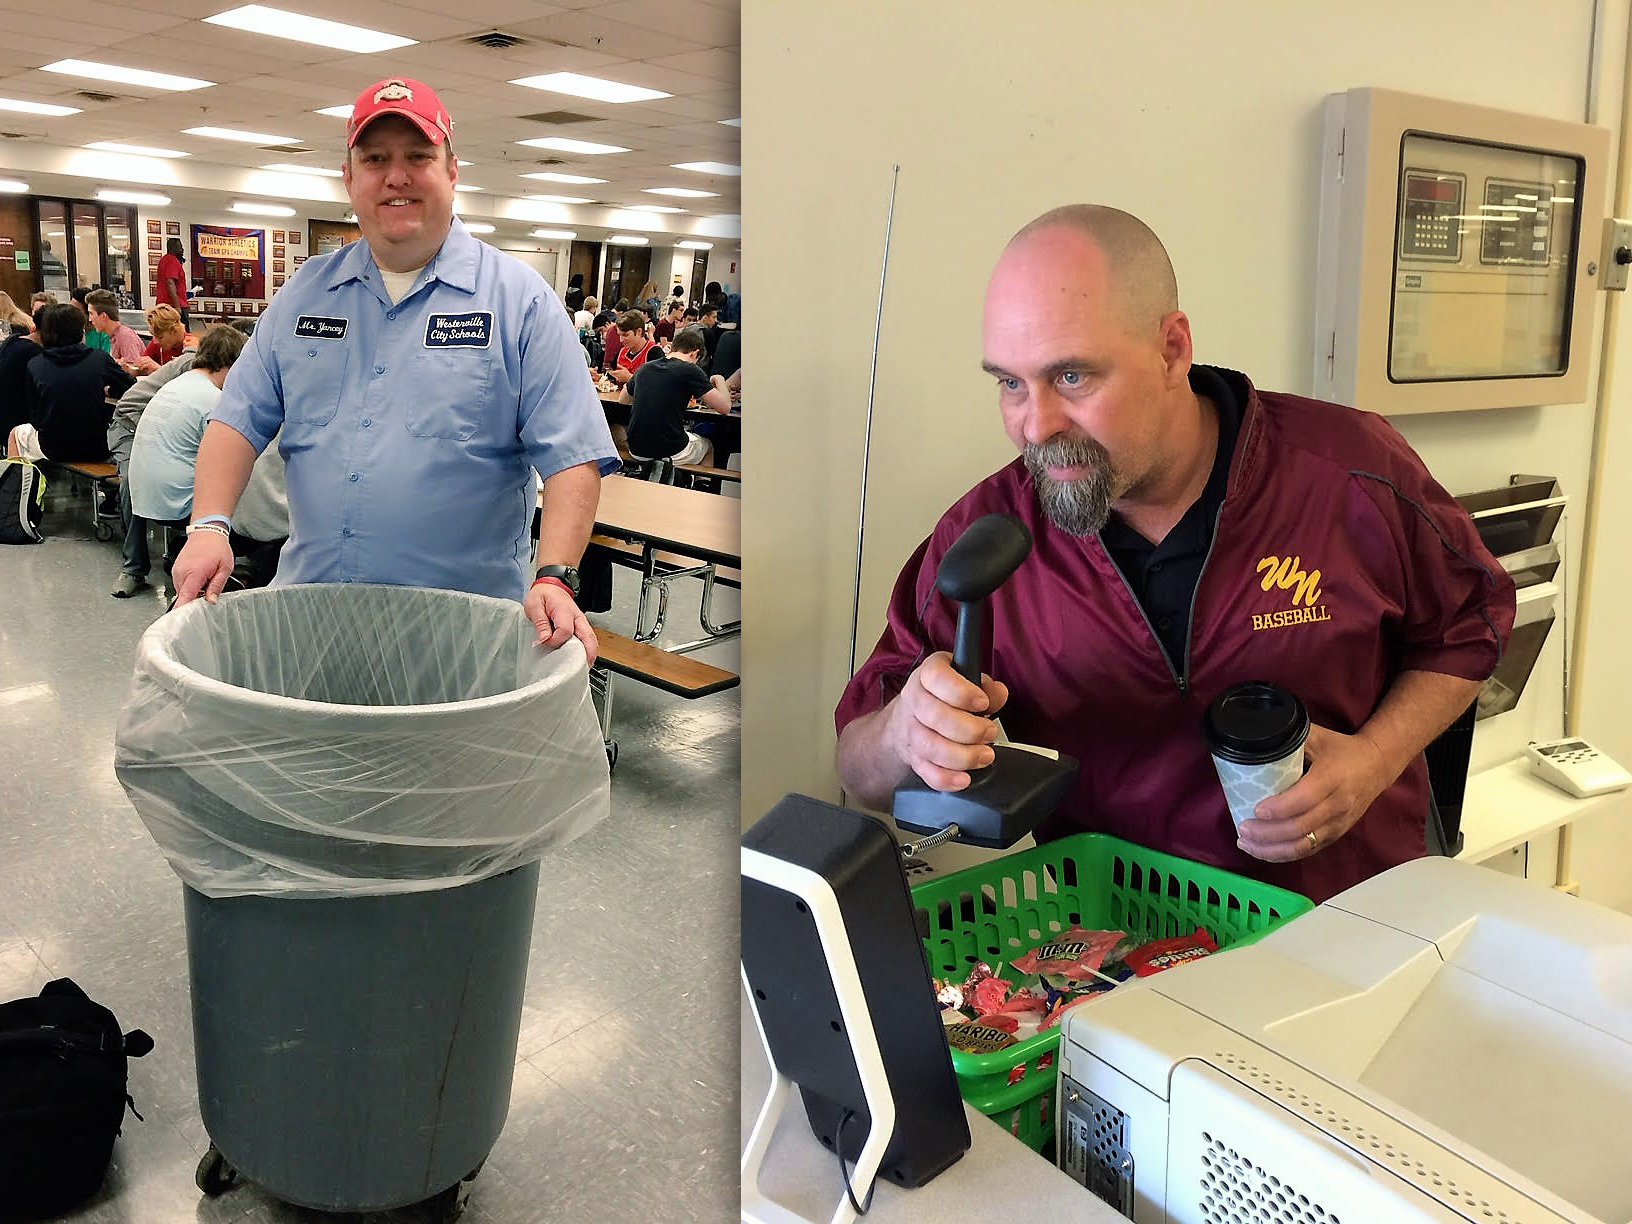 Principal Kurt Yancey and Head Custodian John Edwards